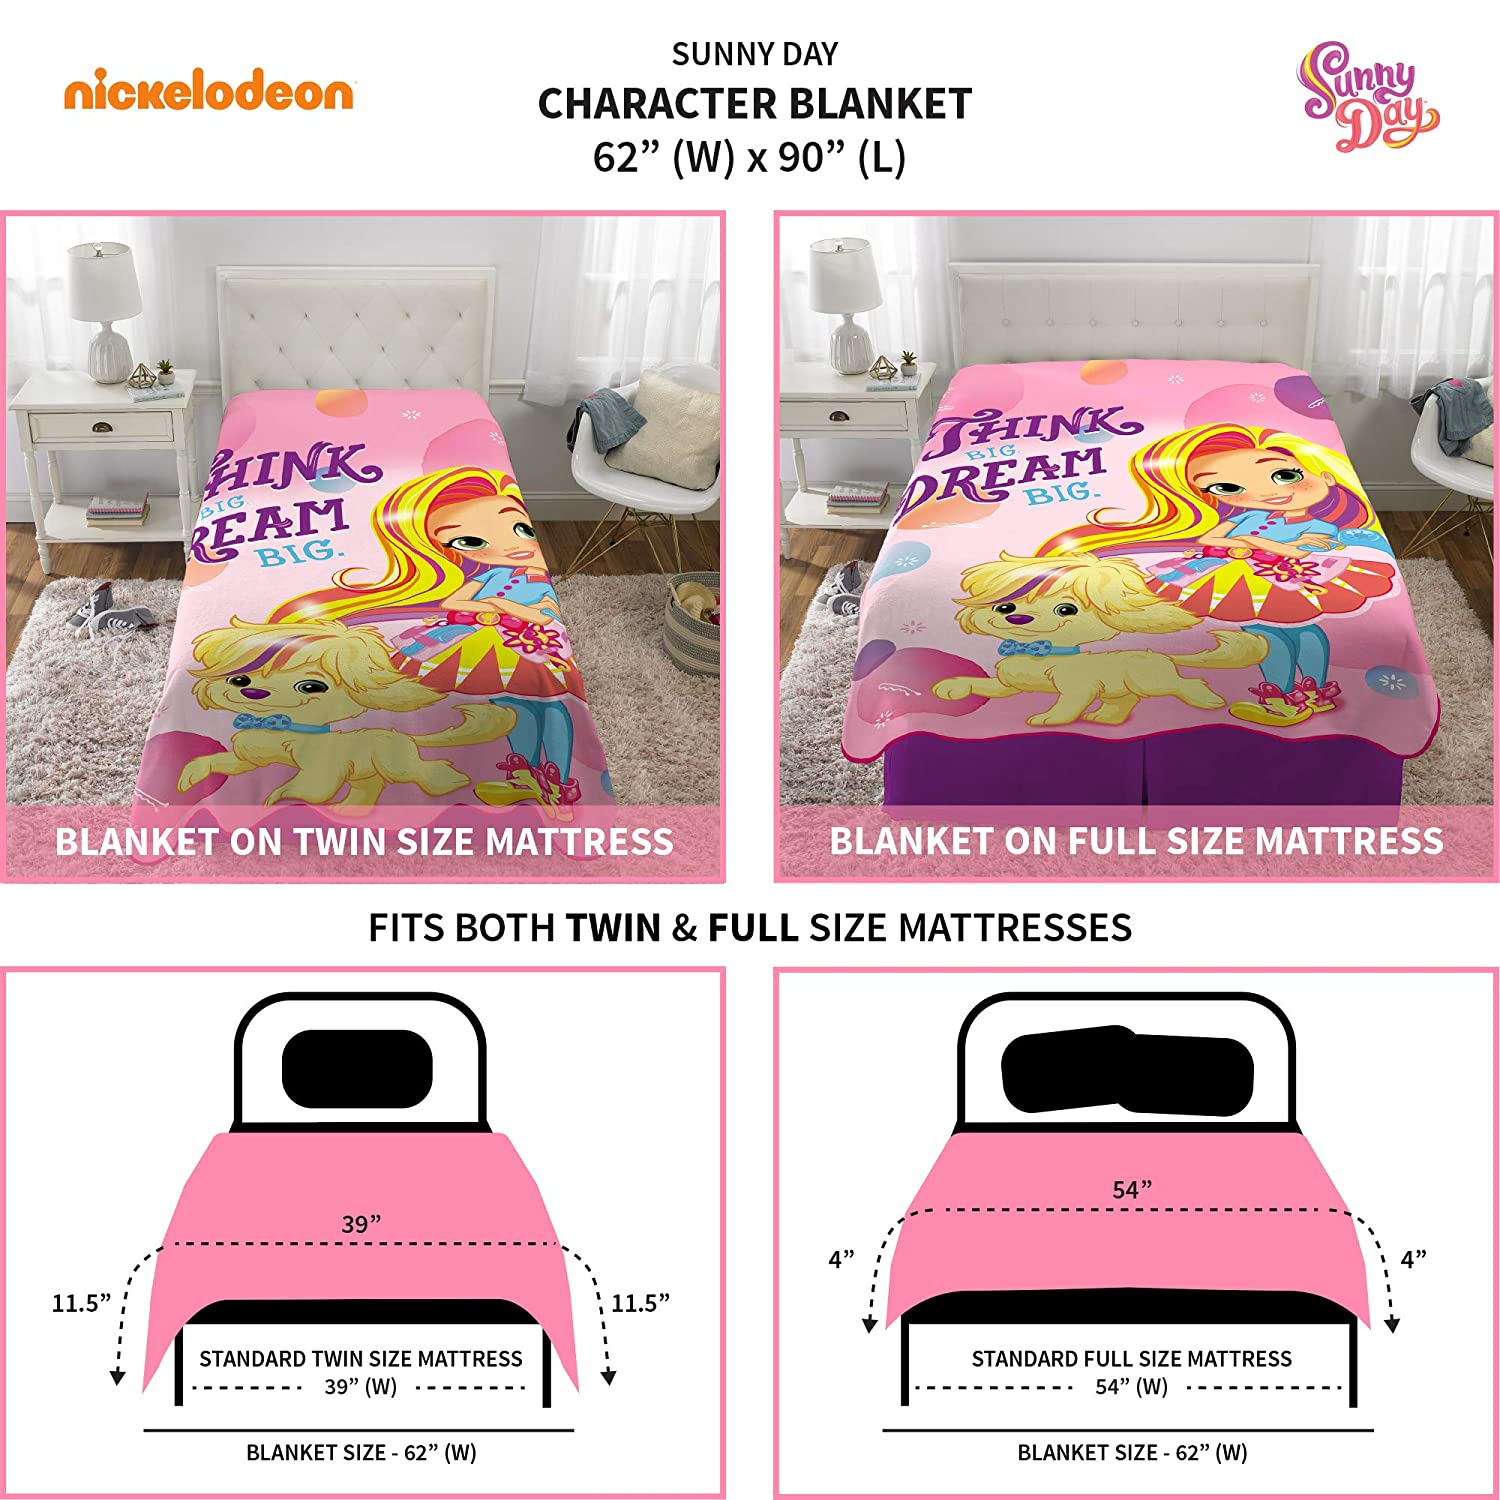 Nickelodeon Sunny Day Soft Plush Microfiber Kids Bedding Blanket Twin//Full Size 62 x 90 Pink Franco Manufacturing A46358